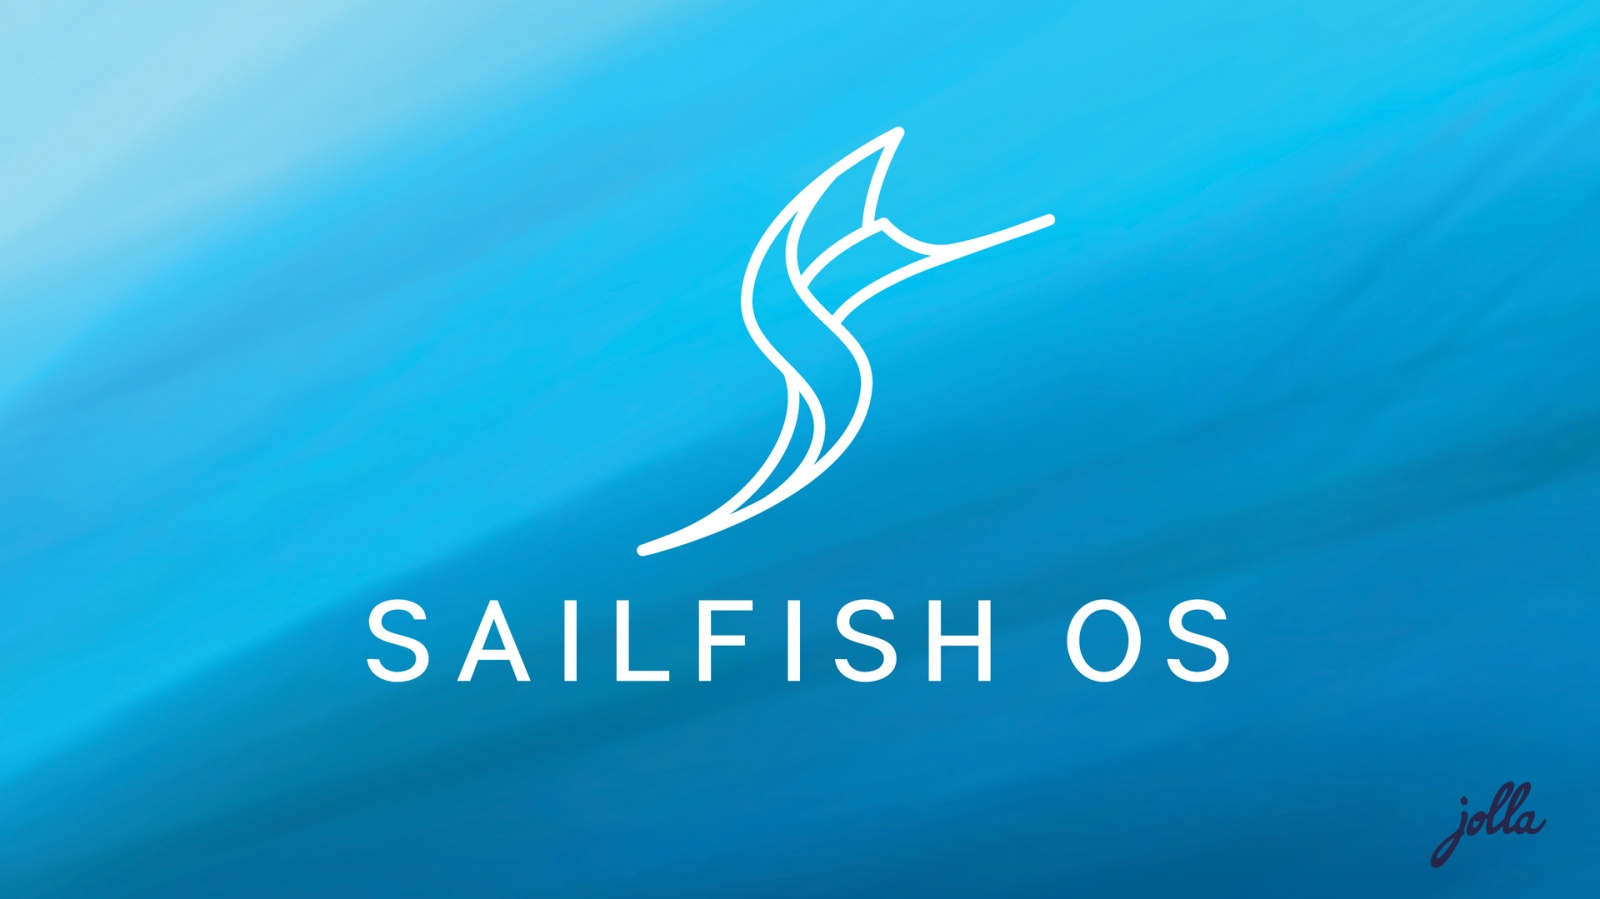 Неочевидные фишки Sailfish OS - 1